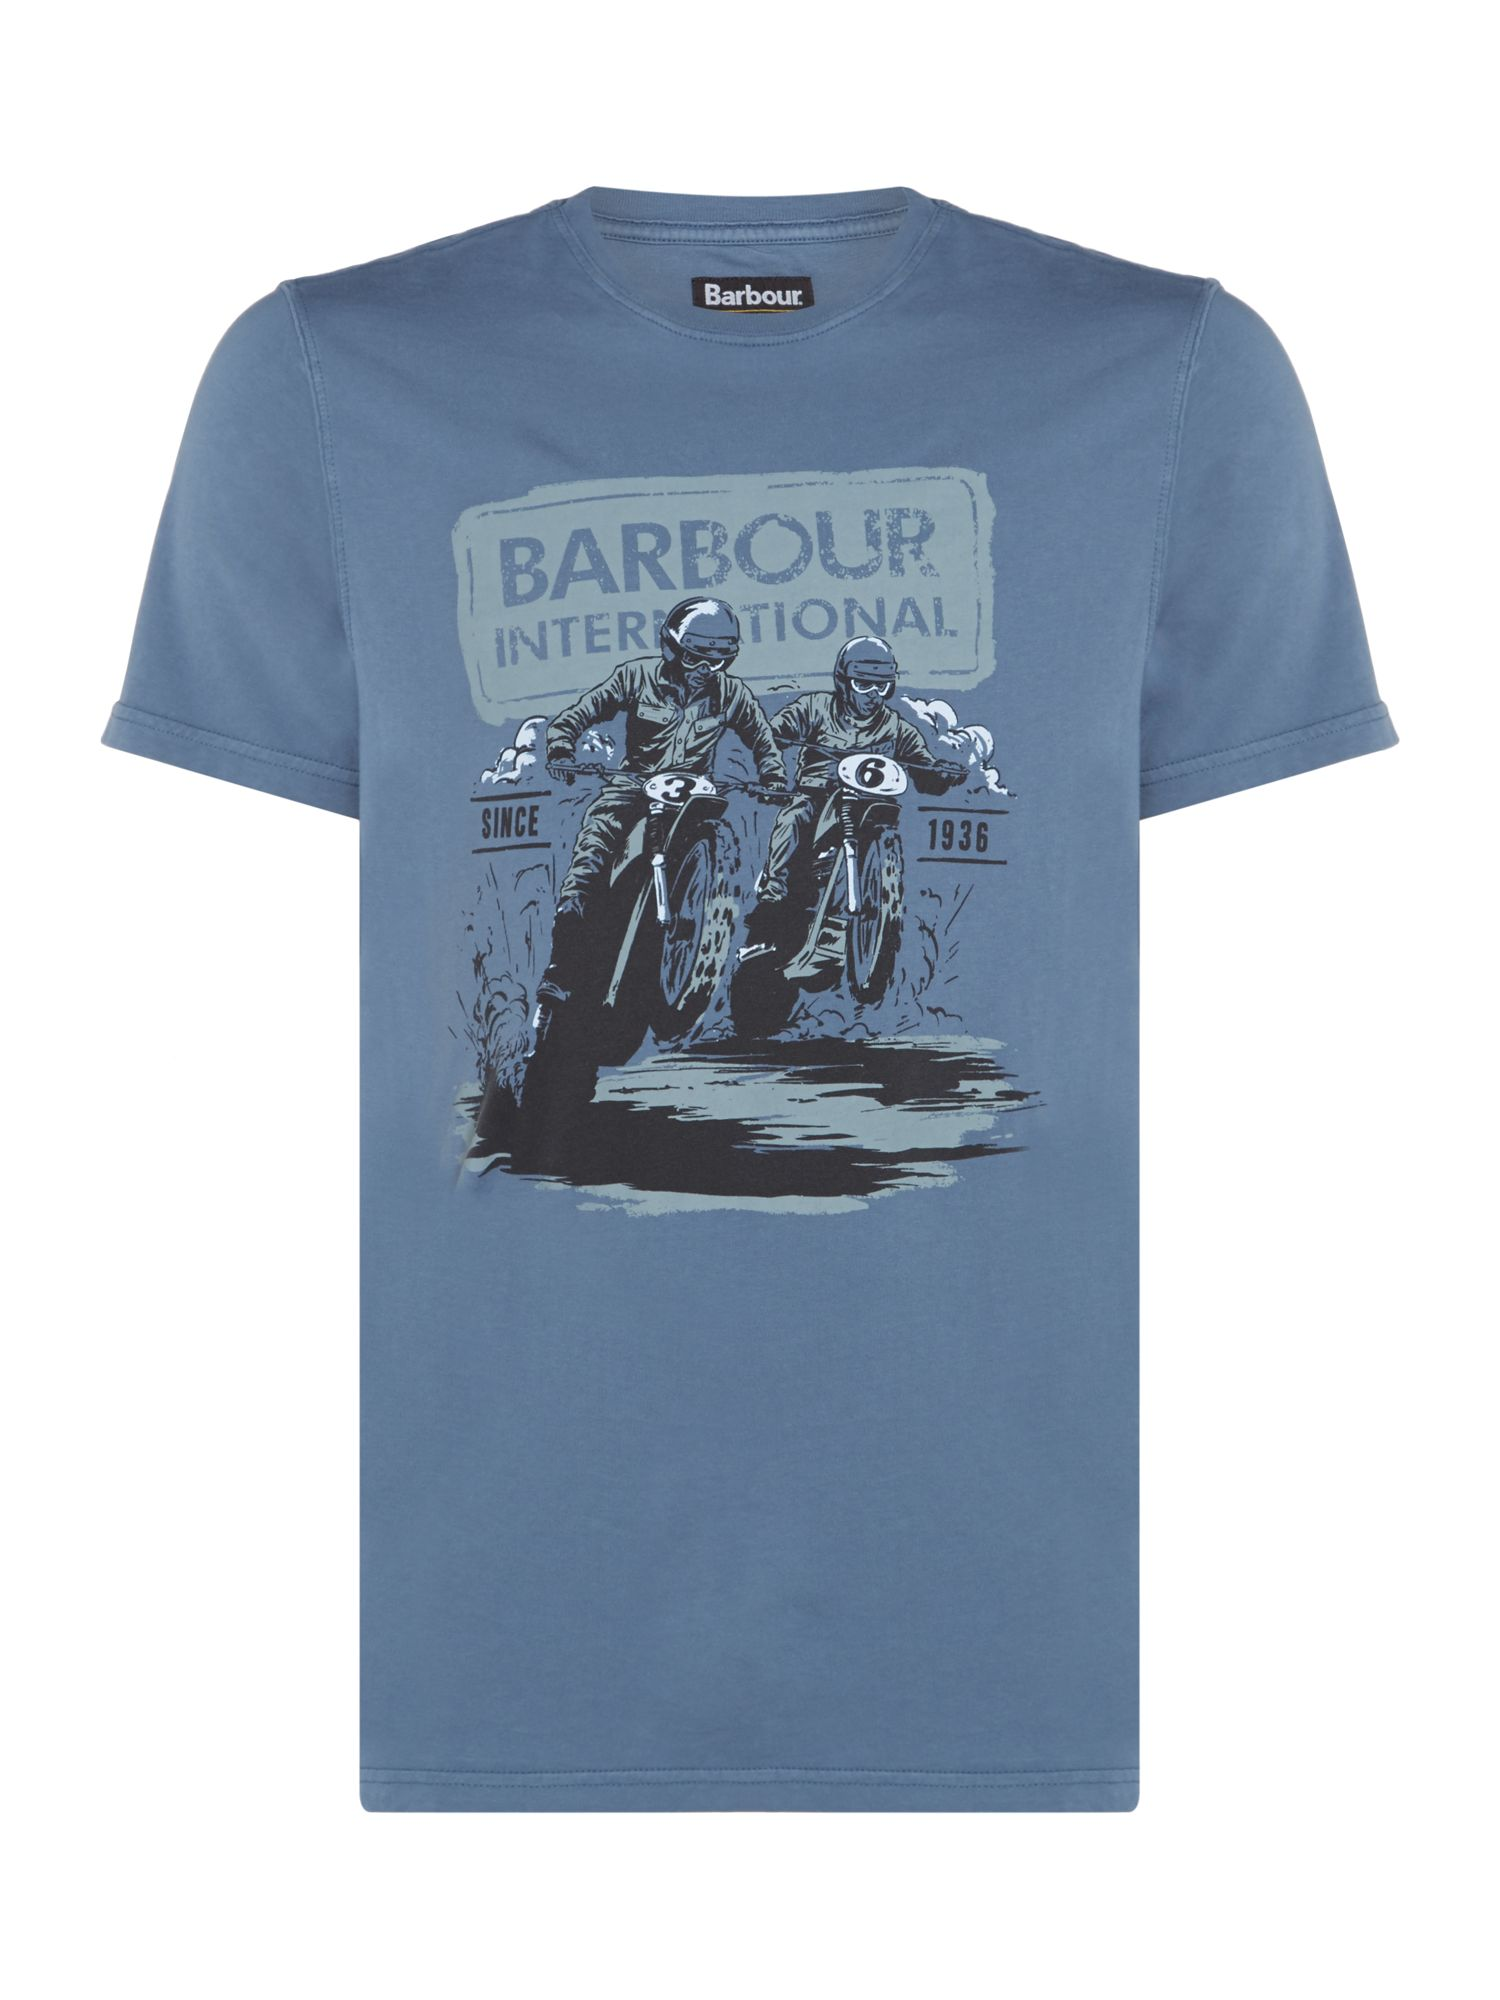 Men's Barbour Duke race short sleeve tshirt, Chambray